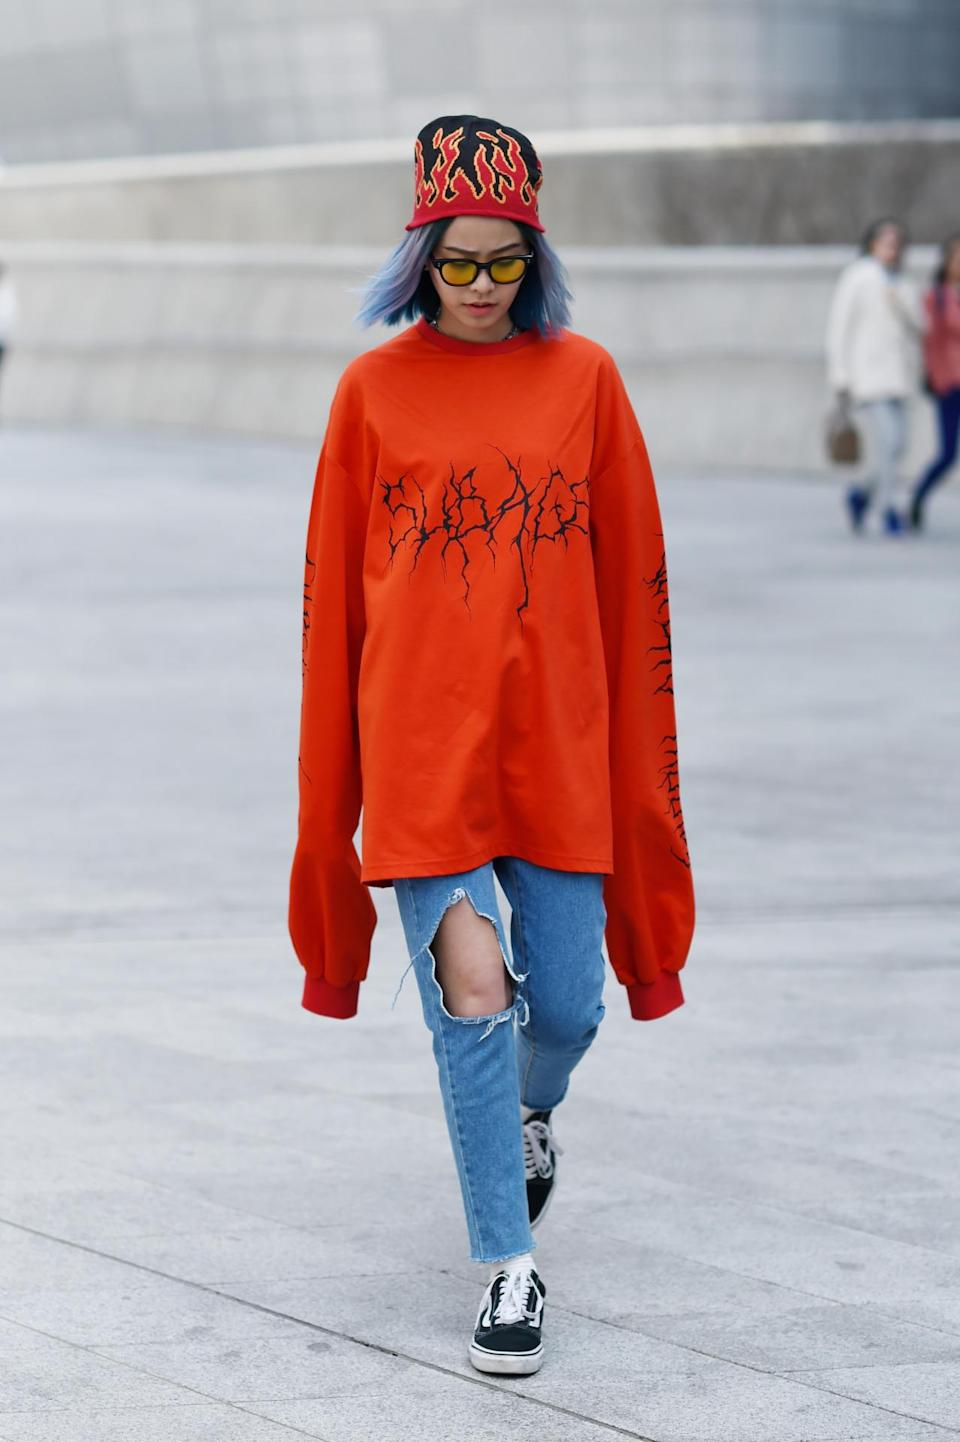 """<p>There's no denying that French brand <a href=""""http://news.yahoo.com/v%C3%AAtements-brings-much-needed-energy-to-paris-173855397.html"""" data-ylk=""""slk:Vetements;outcm:mb_qualified_link;_E:mb_qualified_link;ct:story;"""" class=""""link rapid-noclick-resp yahoo-link"""">Vetements</a> has fully <a href=""""https://www.yahoo.com/style/13-alternatives-1k-vetements-sweatshirt-163314426.html"""" data-ylk=""""slk:taken over the street style scene;outcm:mb_qualified_link;_E:mb_qualified_link;ct:story;"""" class=""""link rapid-noclick-resp yahoo-link"""">taken over the street style scene</a>. And while few of us can afford the $775 oversize tee shown here, there are definitely ways to achieve the same look for way less money. (<i>Photo: <a href=""""http://www.streetper.com"""" rel=""""nofollow noopener"""" target=""""_blank"""" data-ylk=""""slk:Streetper"""" class=""""link rapid-noclick-resp"""">Streetper</a>)</i></p>"""